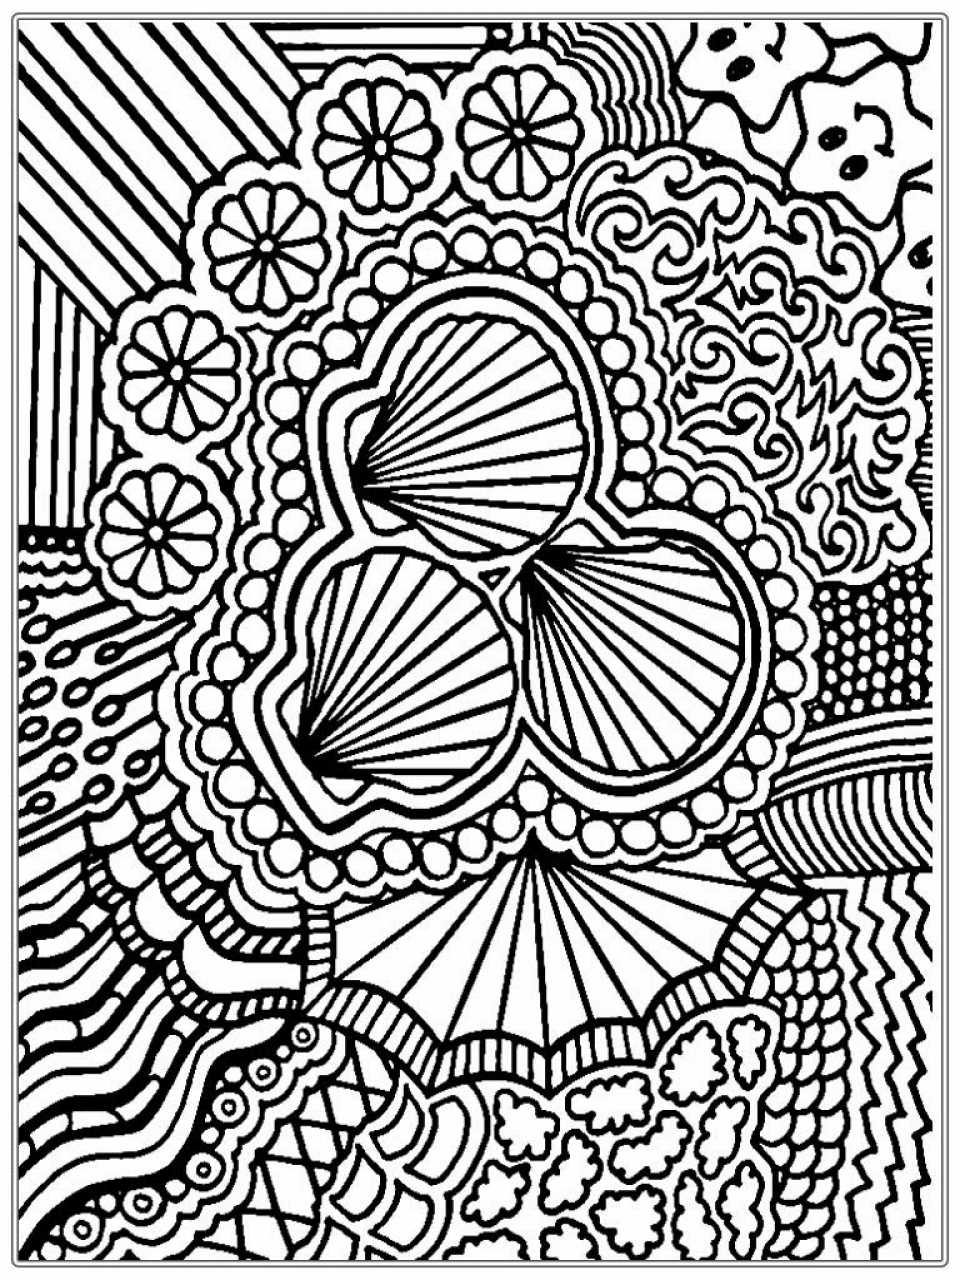 abstract coloring pages to print get this grown up coloring pages free printable 42032 print coloring pages to abstract